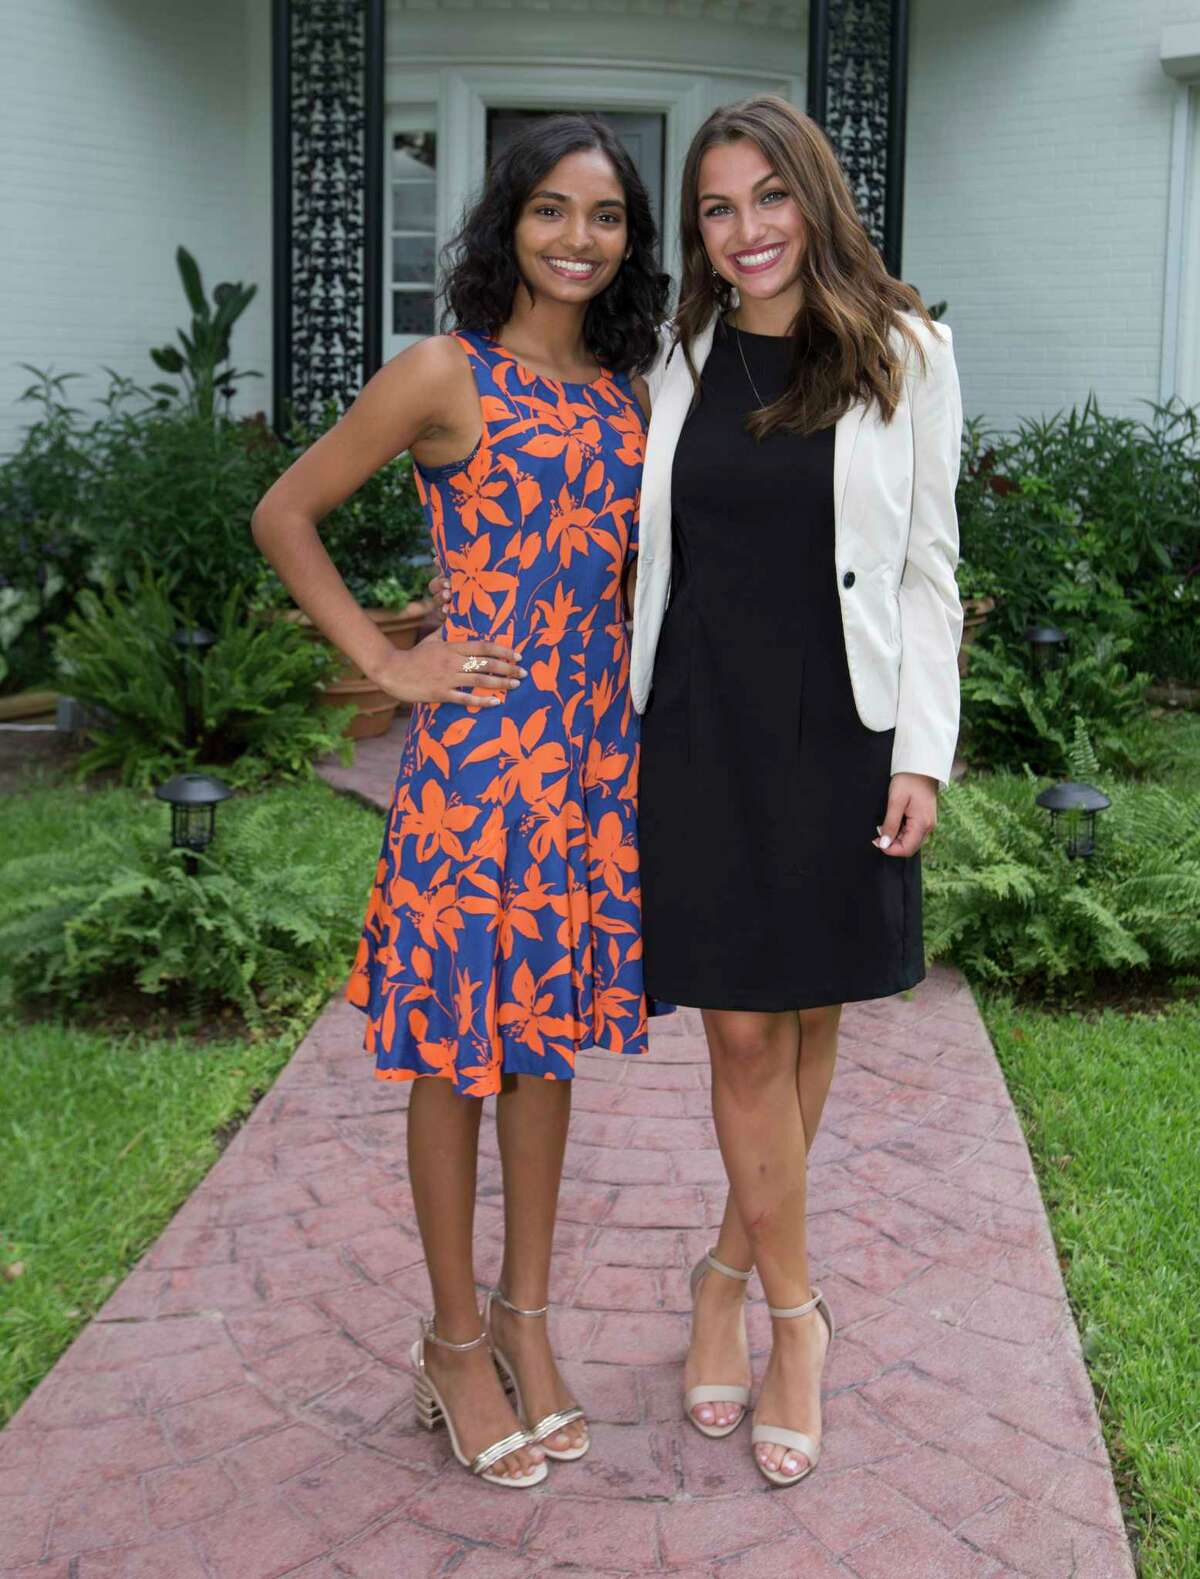 Nandini Kommana, left, and Camryn Harper pose for a photograph at the Bastille Day Houston celebration on Sunday, July 14, 2019, in Houston.